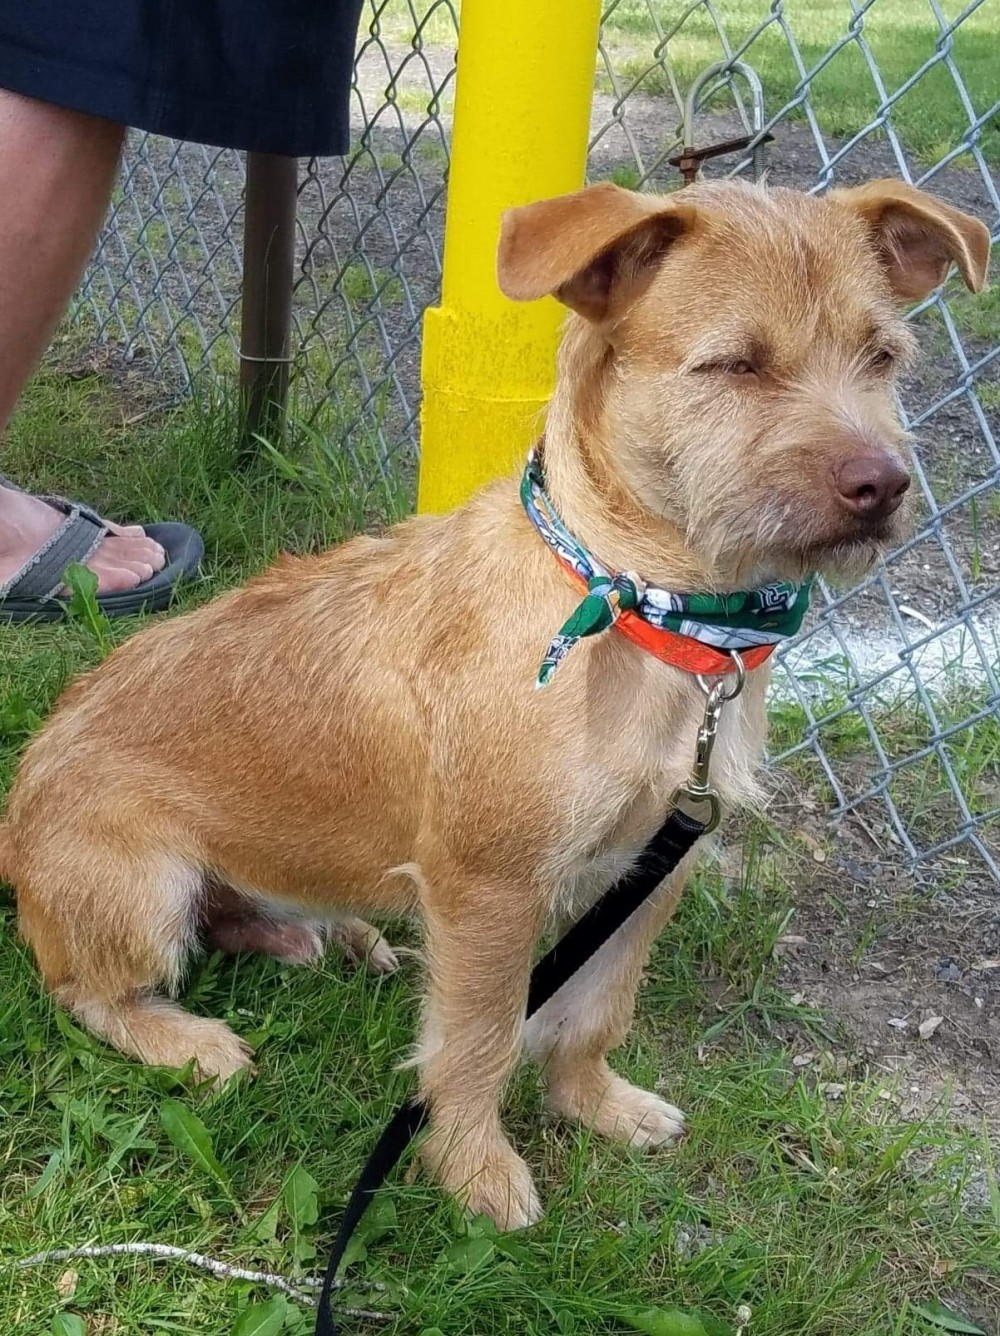 Rusty may have left Puerto Rico for a new life 4fc5390d6